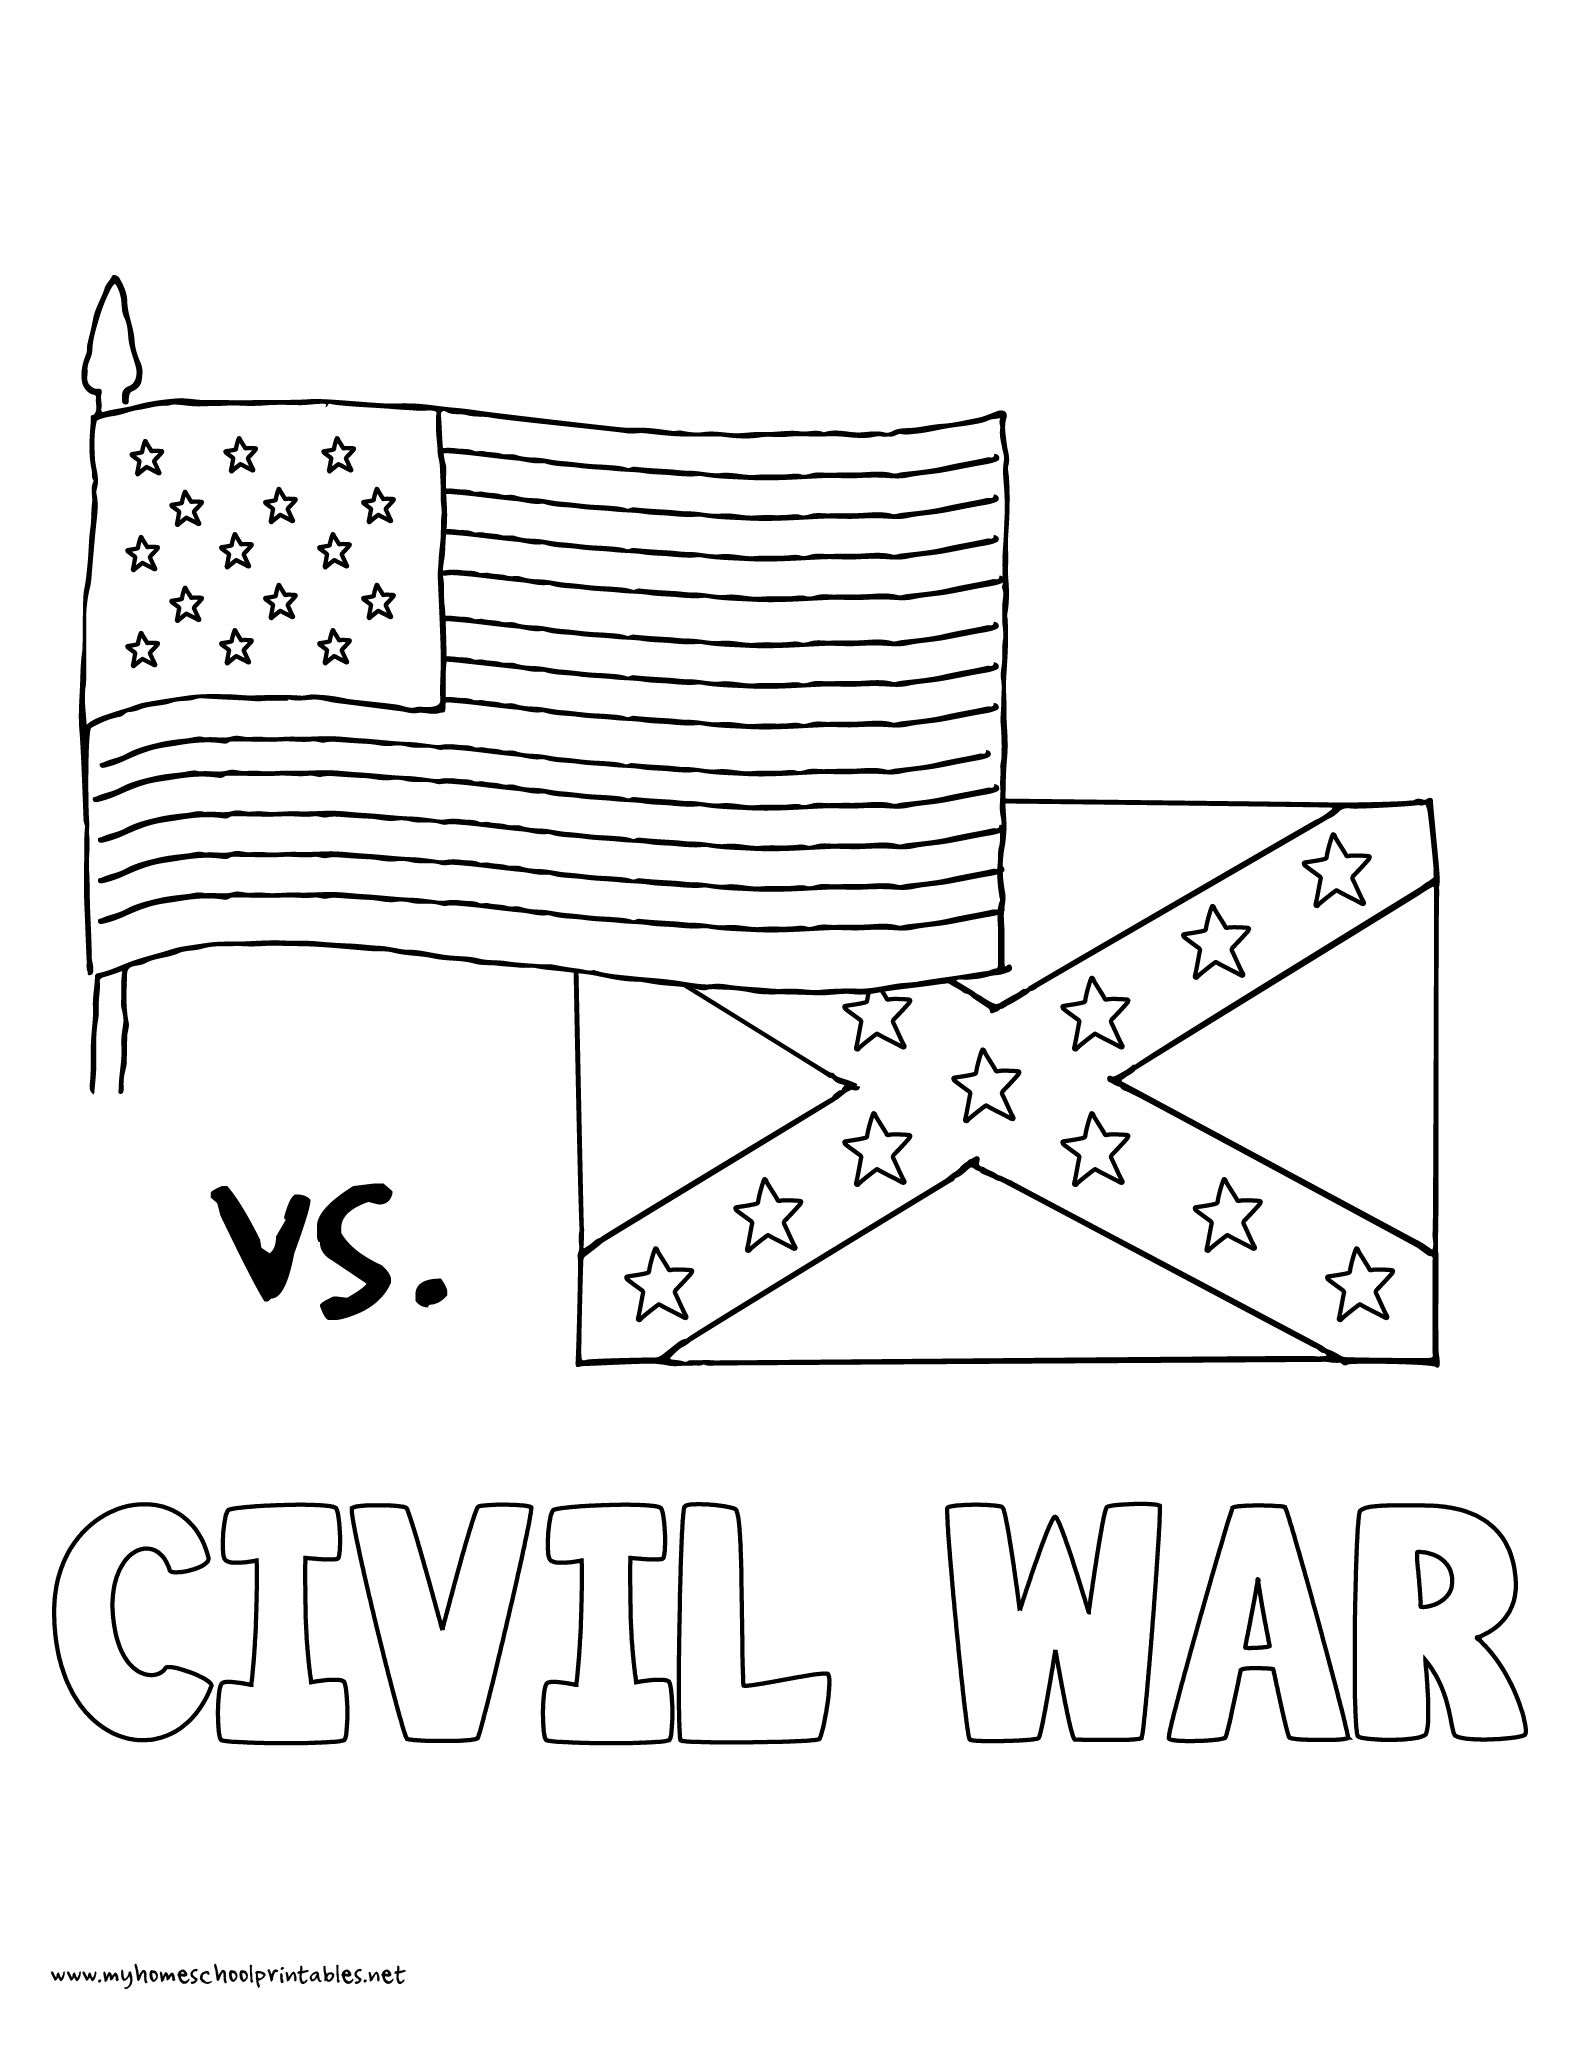 Civil War Coloring Page Best Image Coloring Page